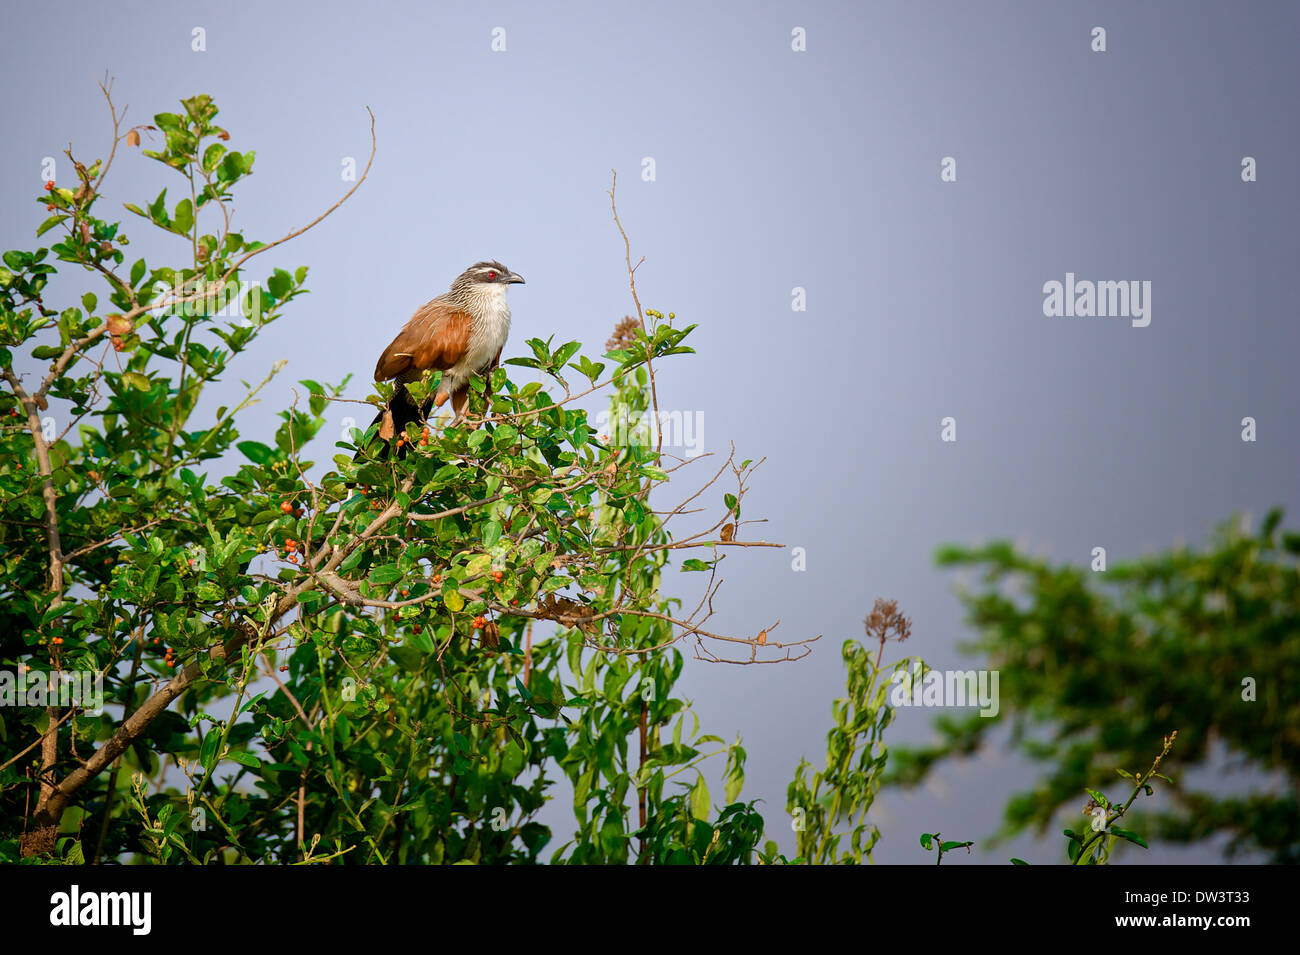 A white-browed coucal (Centropus superciliosus), a member of the cuckoo family, perched on a tree. - Stock Image